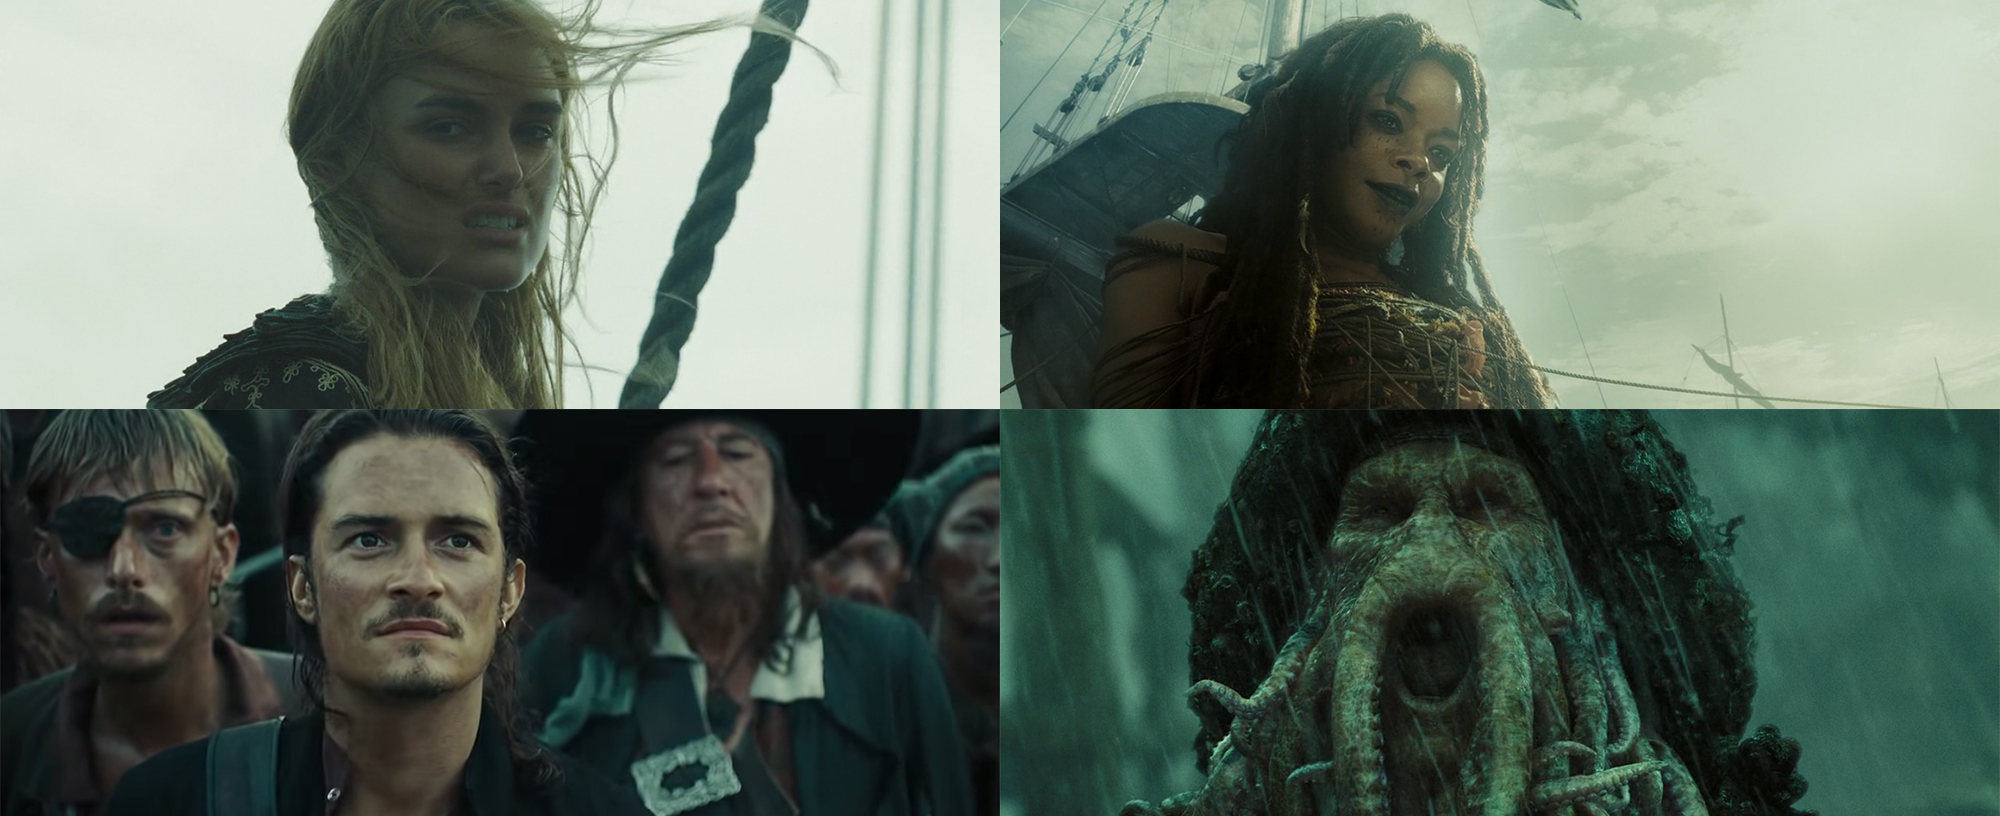 potc 31 - lovers contrasted